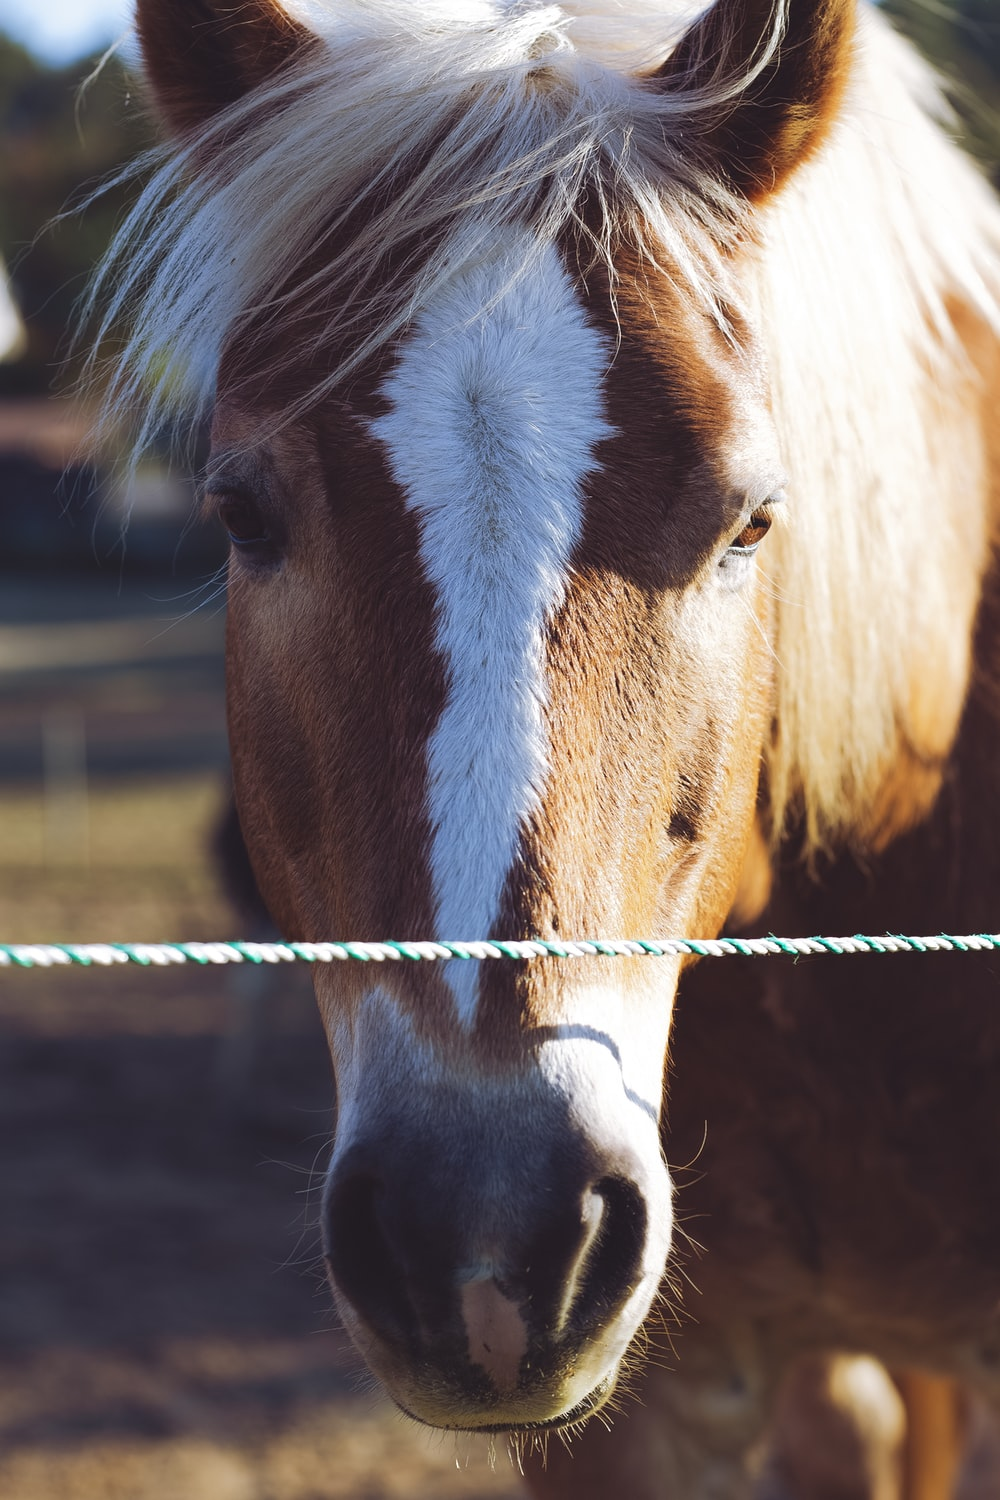 brown and white horse in cage